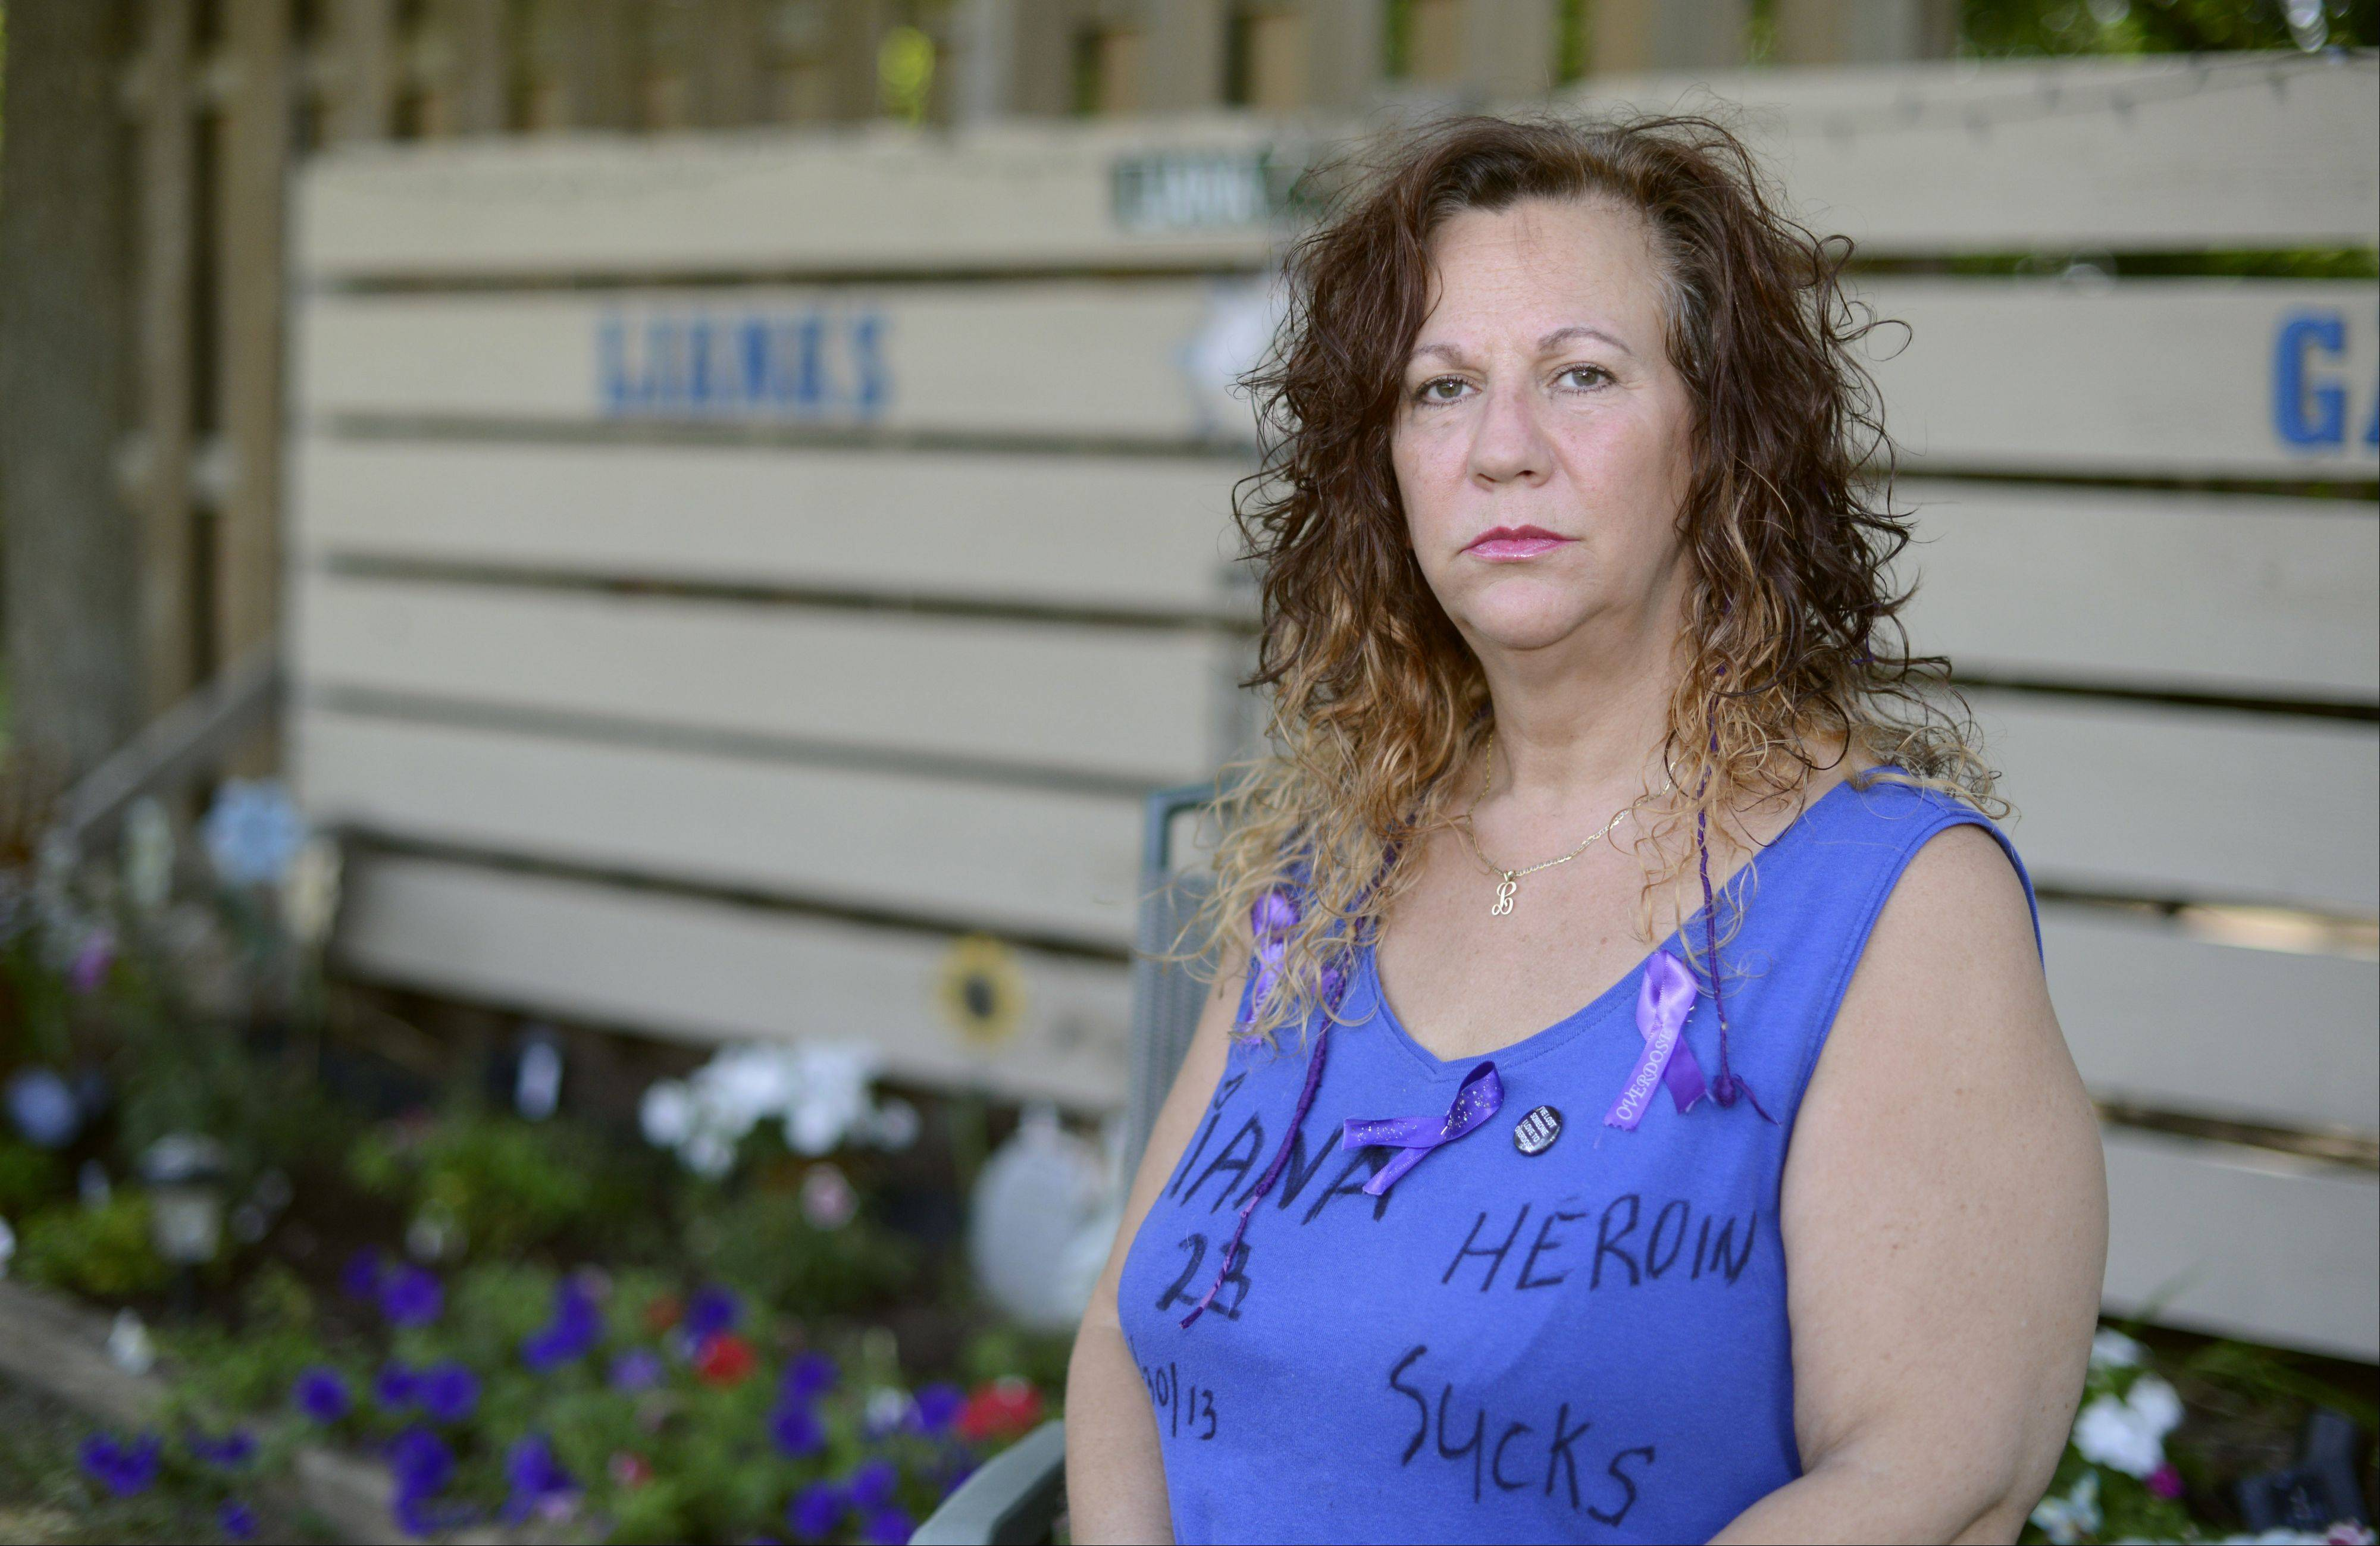 Tanya Childs of Elgin is organizing a rally Saturday in Elgin for International Drug Overdose Awareness Day. Childs lost her 23-year-old daughter, Liana, to what she is sure was a heroin overdose in April. Her front yard now has a garden in Liana's memory, to which people continually add flowers, plants and decorations.